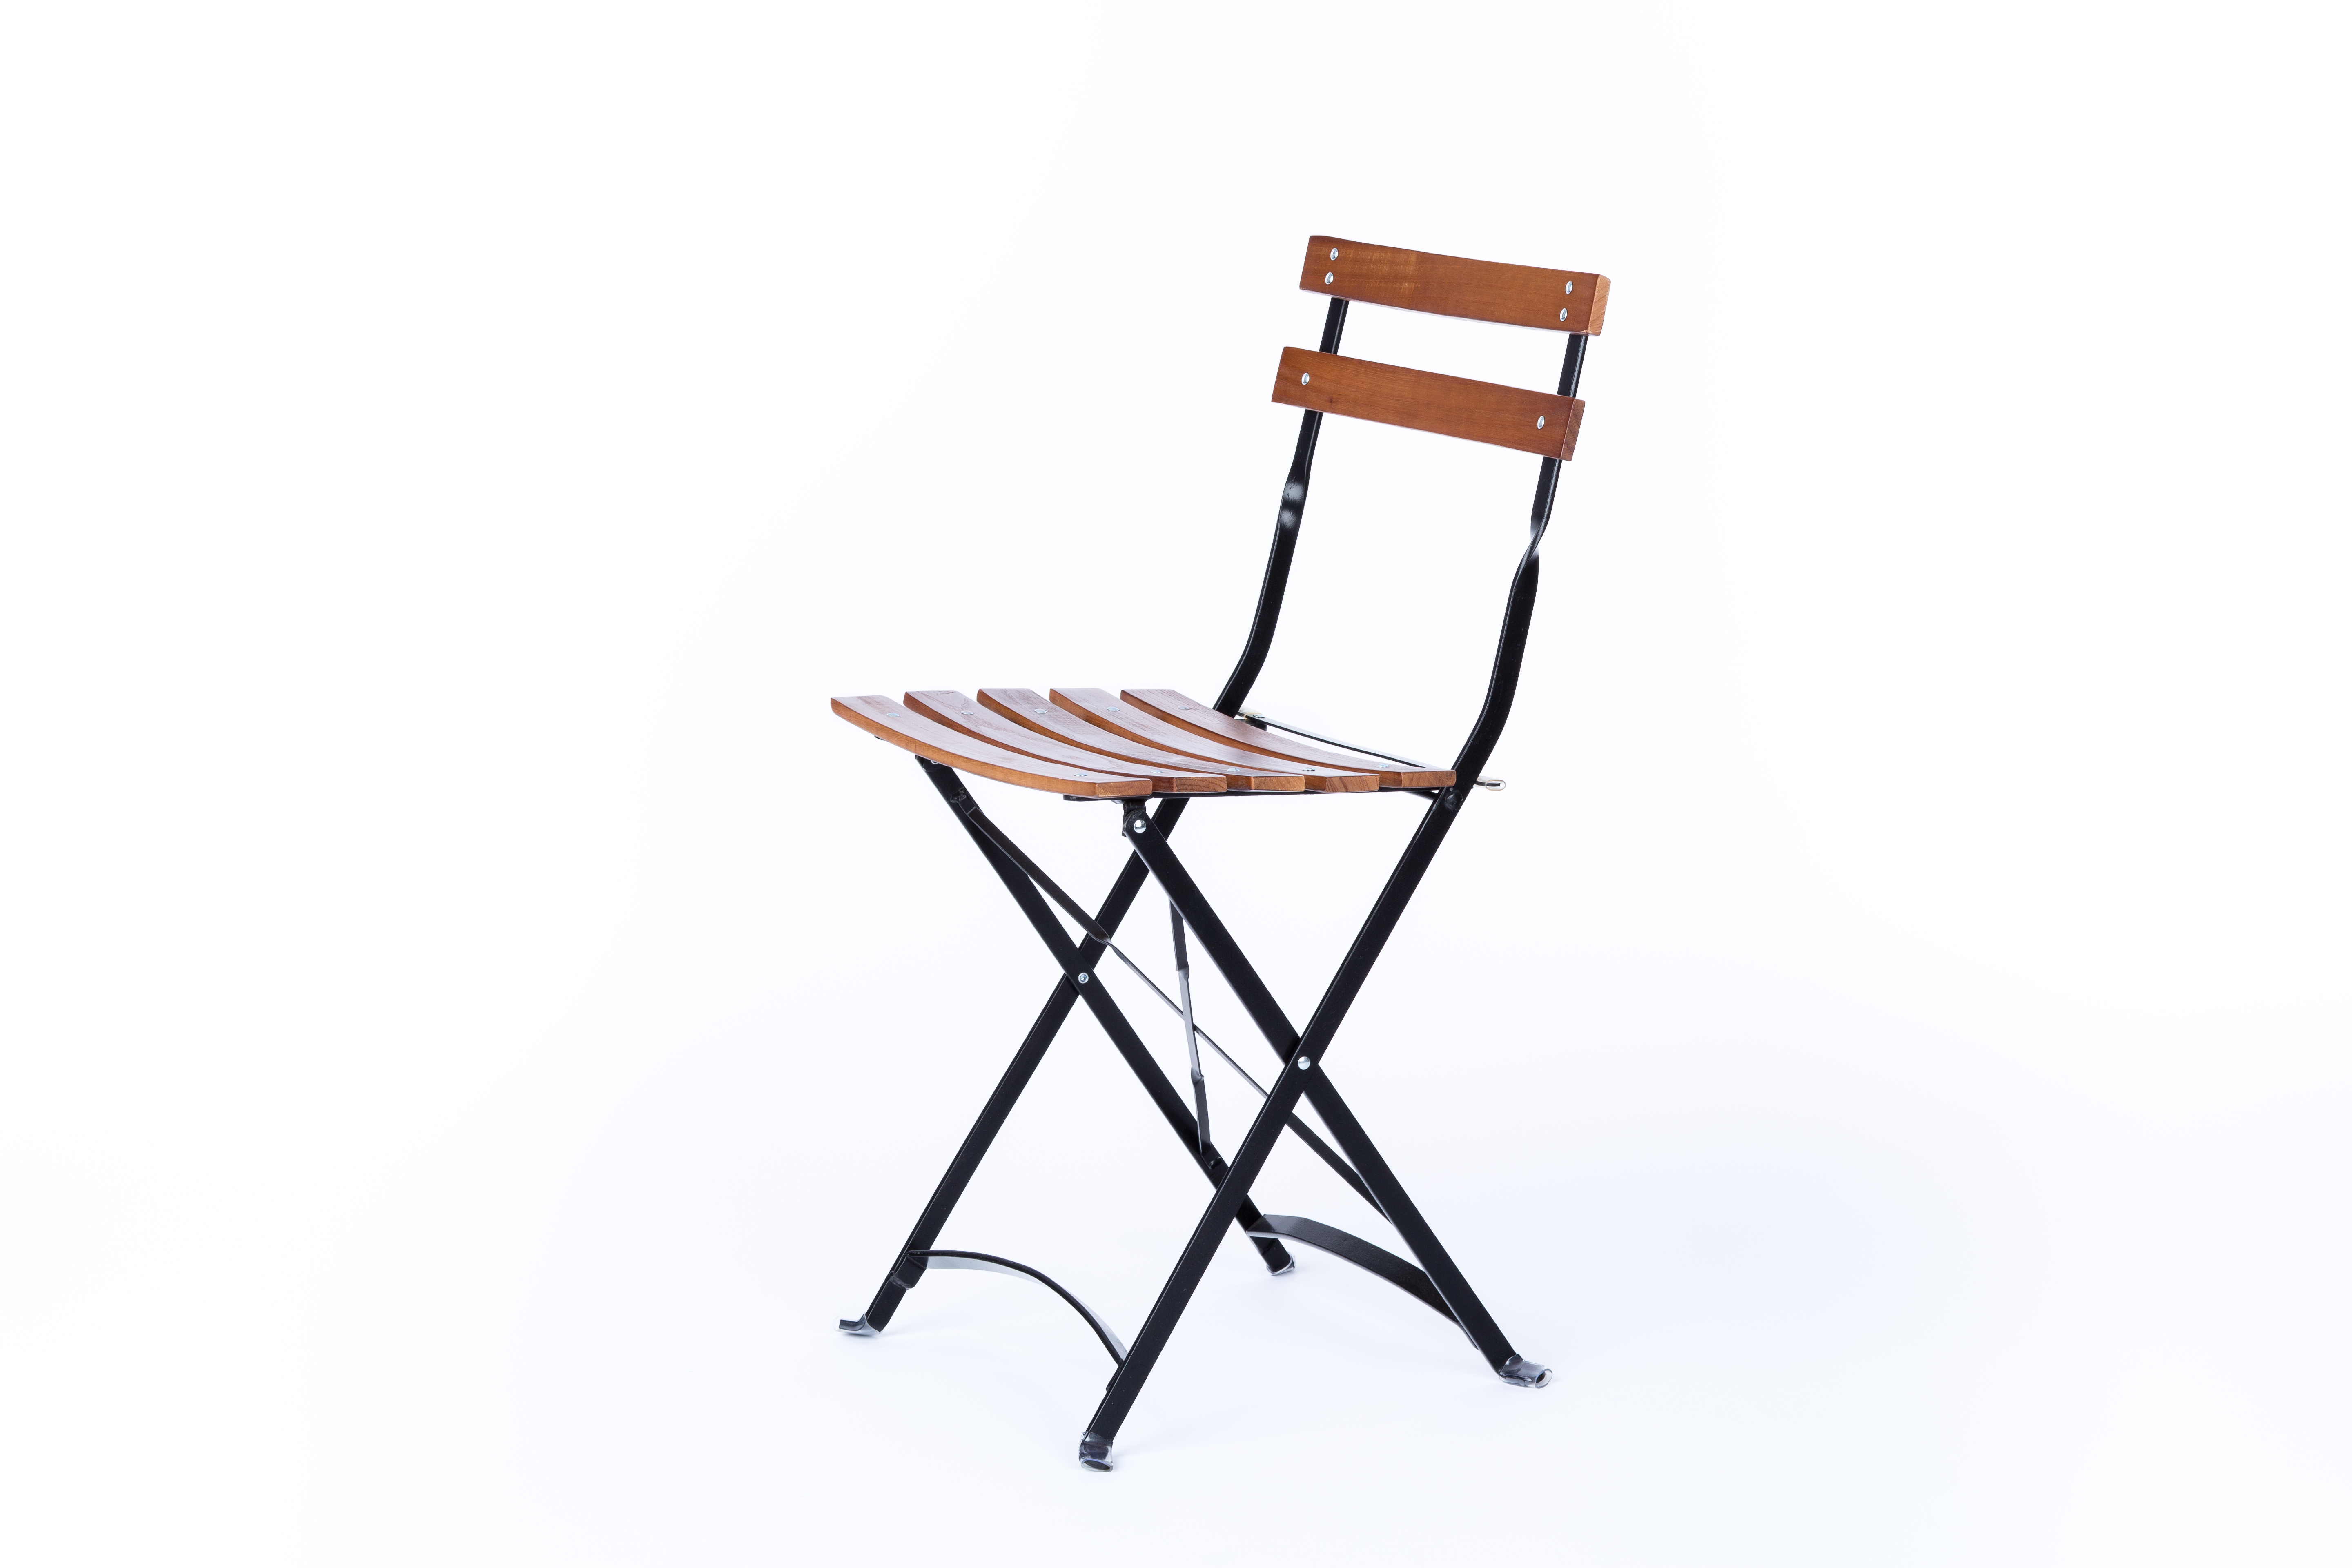 renting folding chairs booster chair baby wooden slat rental encore events rentals wood